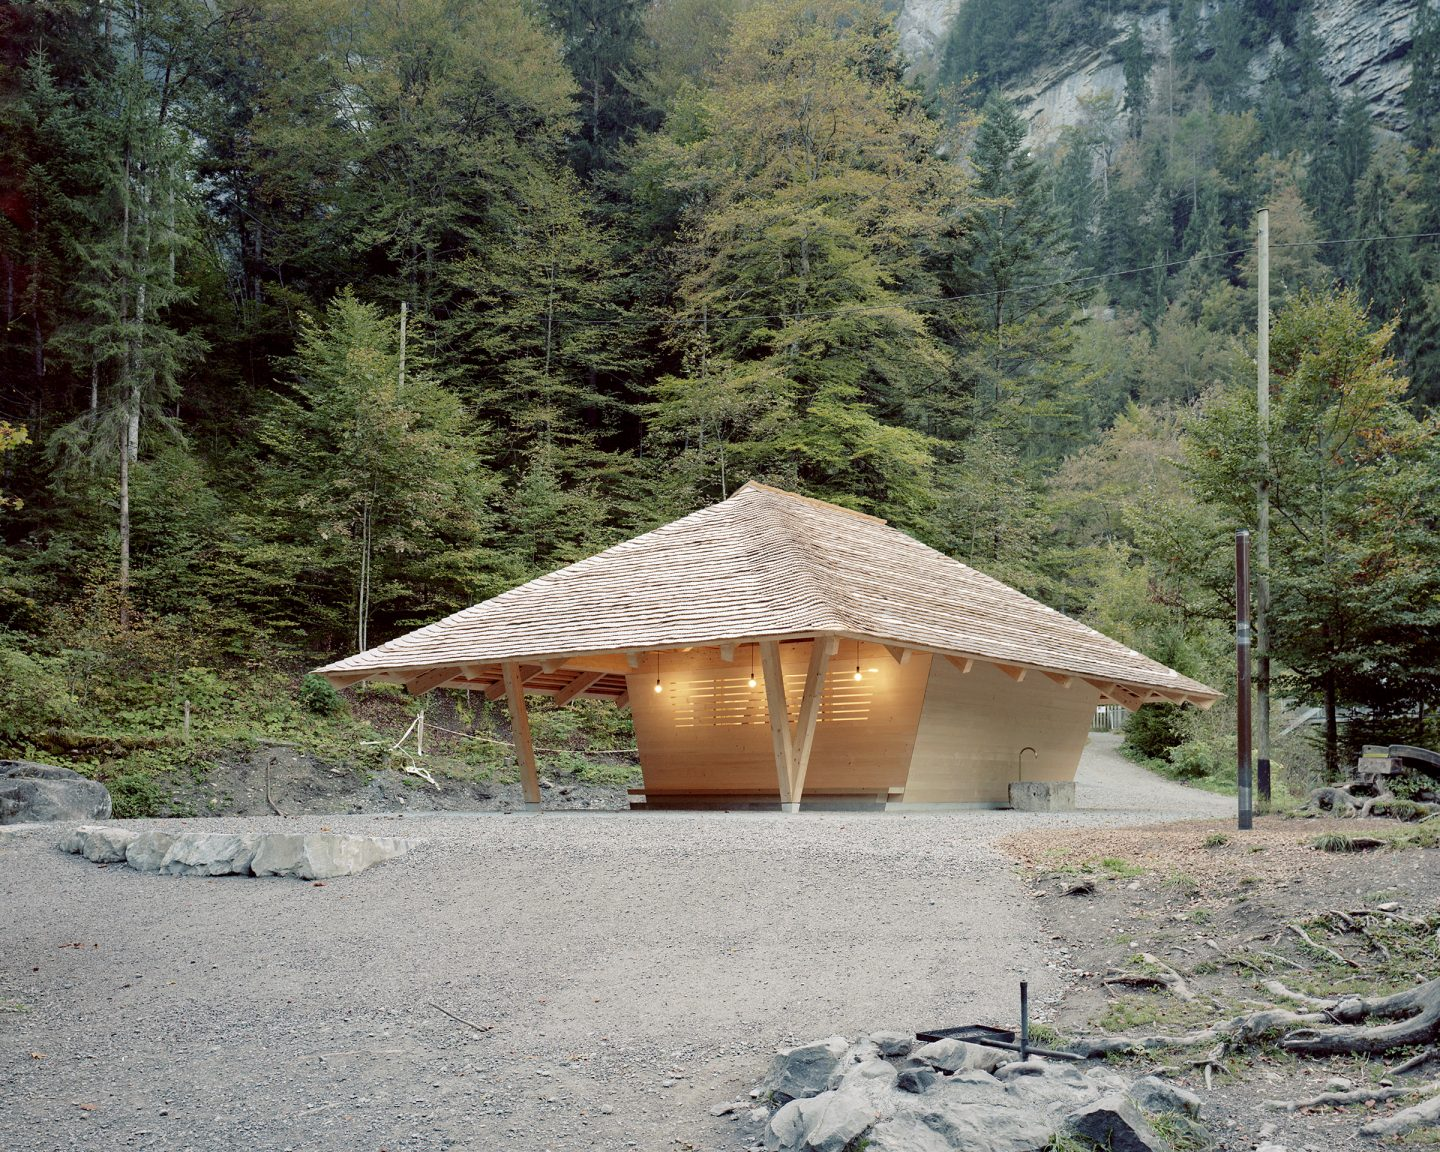 Wasserhaus, Blausee BE. Hildebrand Studios AG, Architecture and Urban Design in Zurich, Switzerland